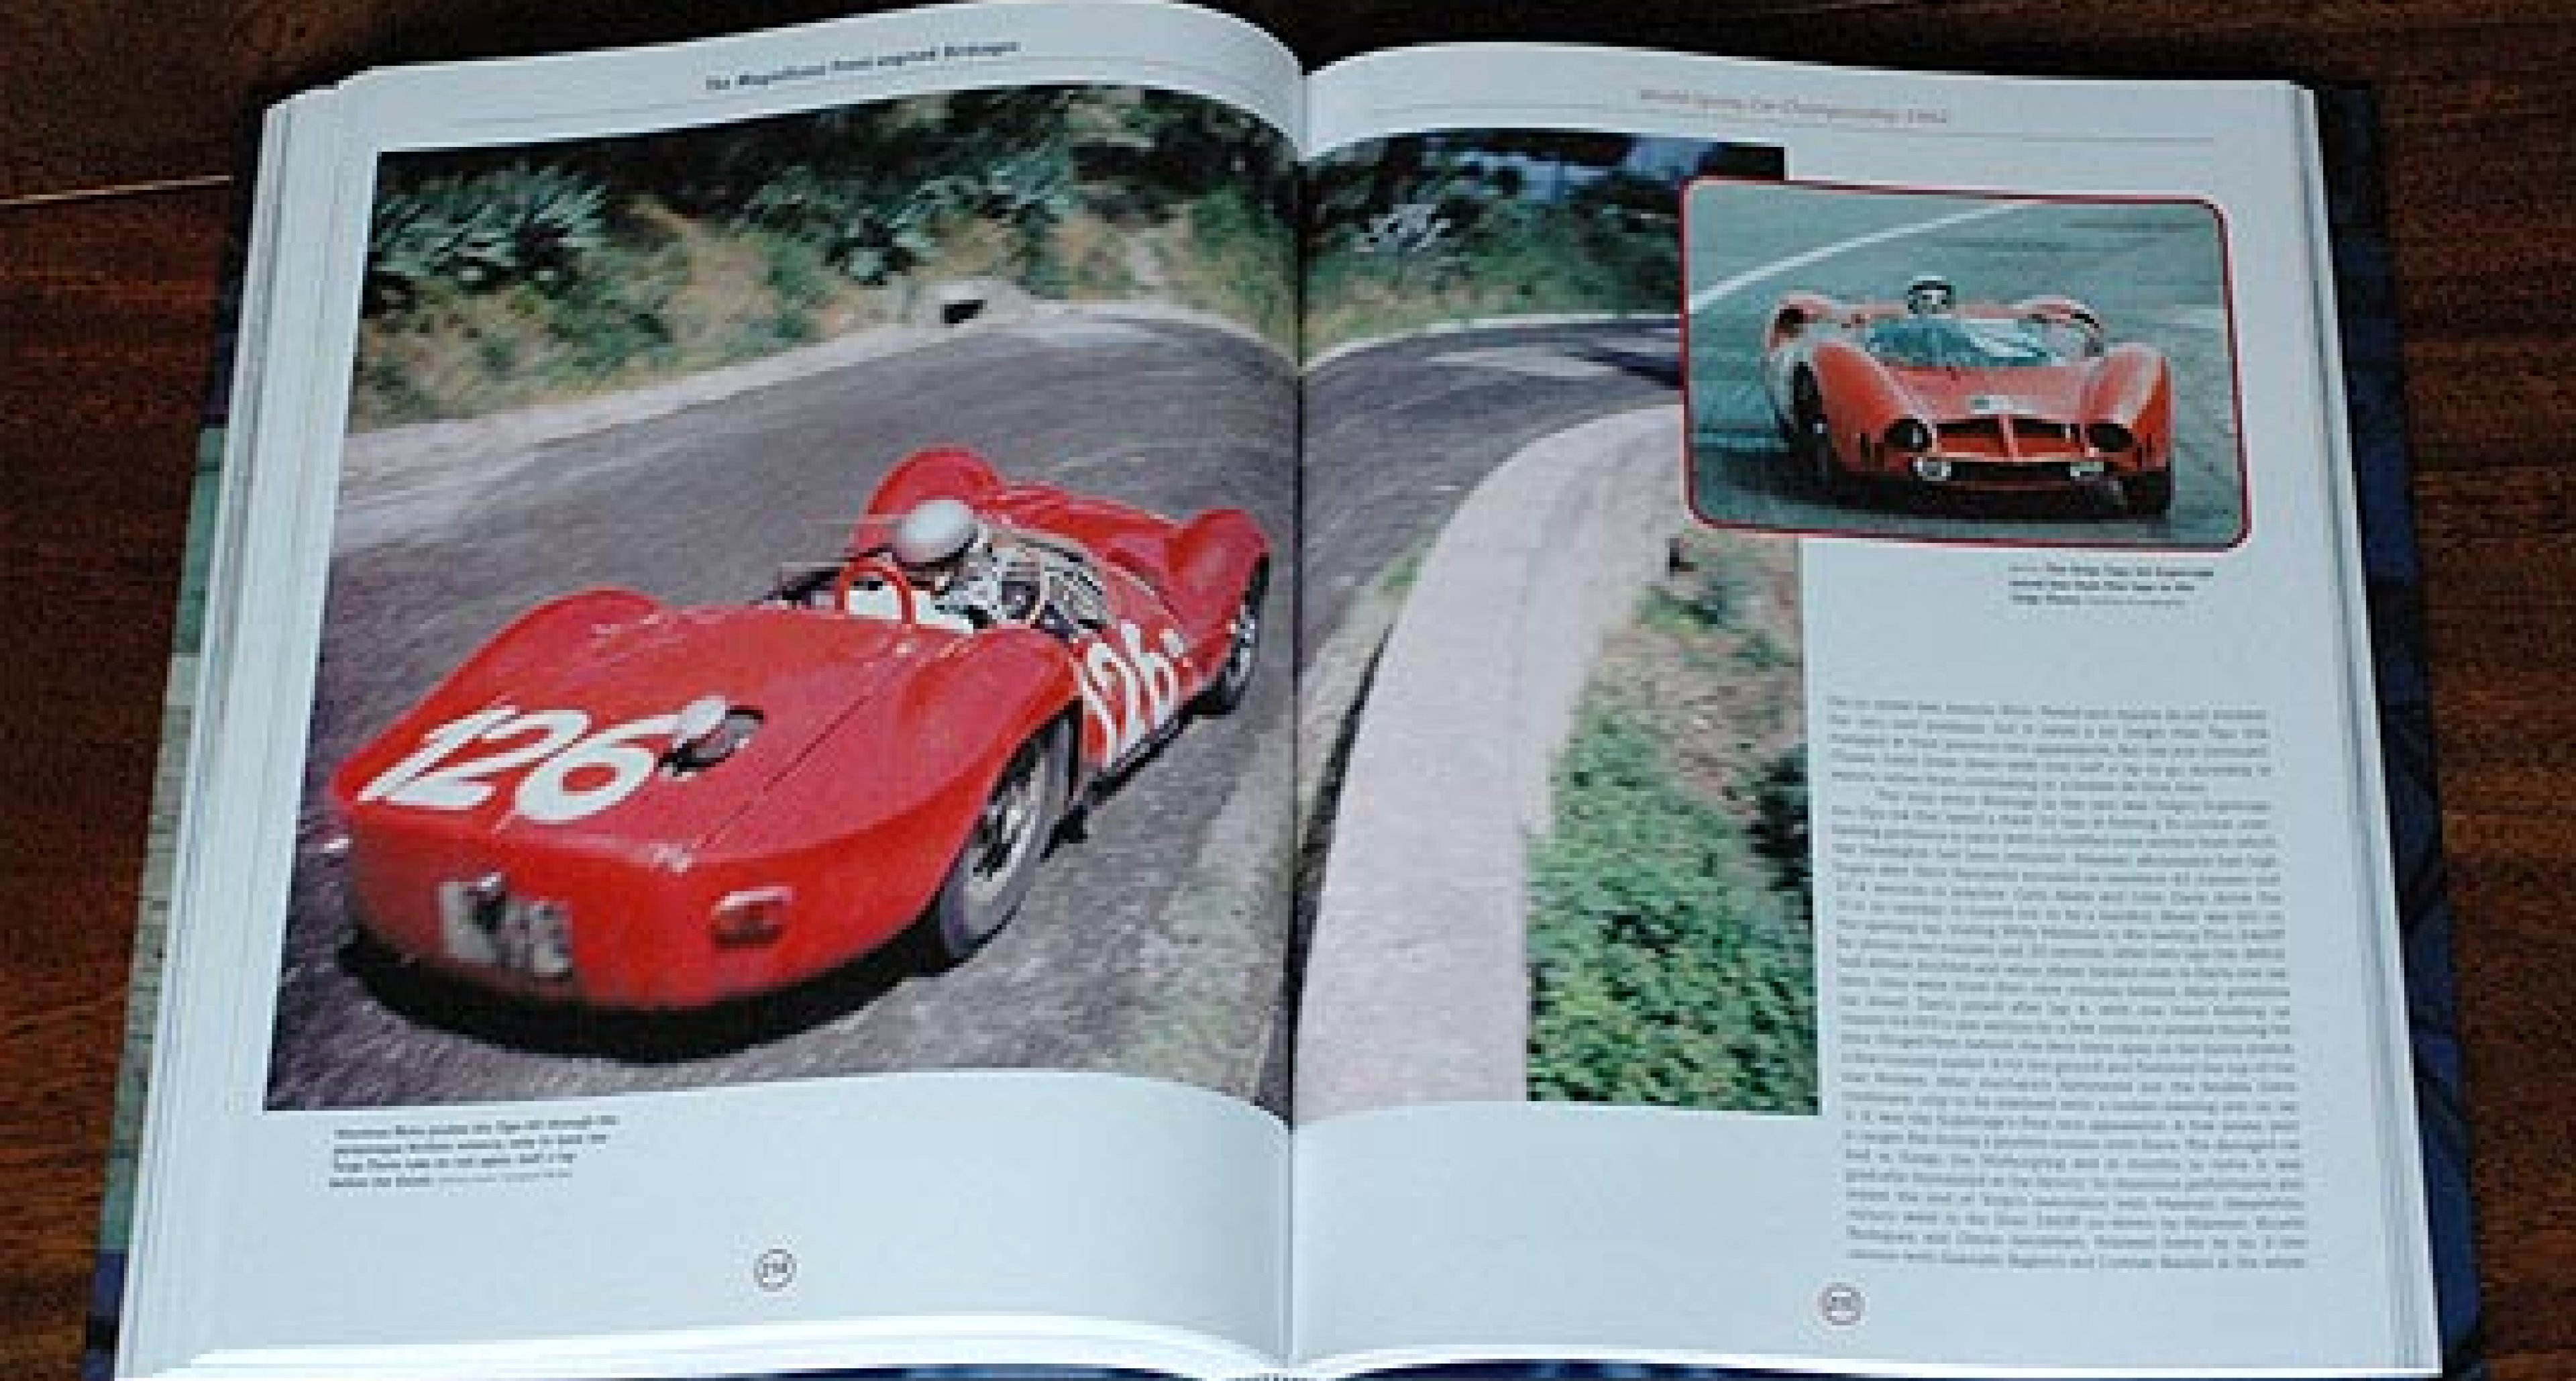 Book Review: Maserati Tipo 60 and 61; The Magnificent Front-engined Birdcages